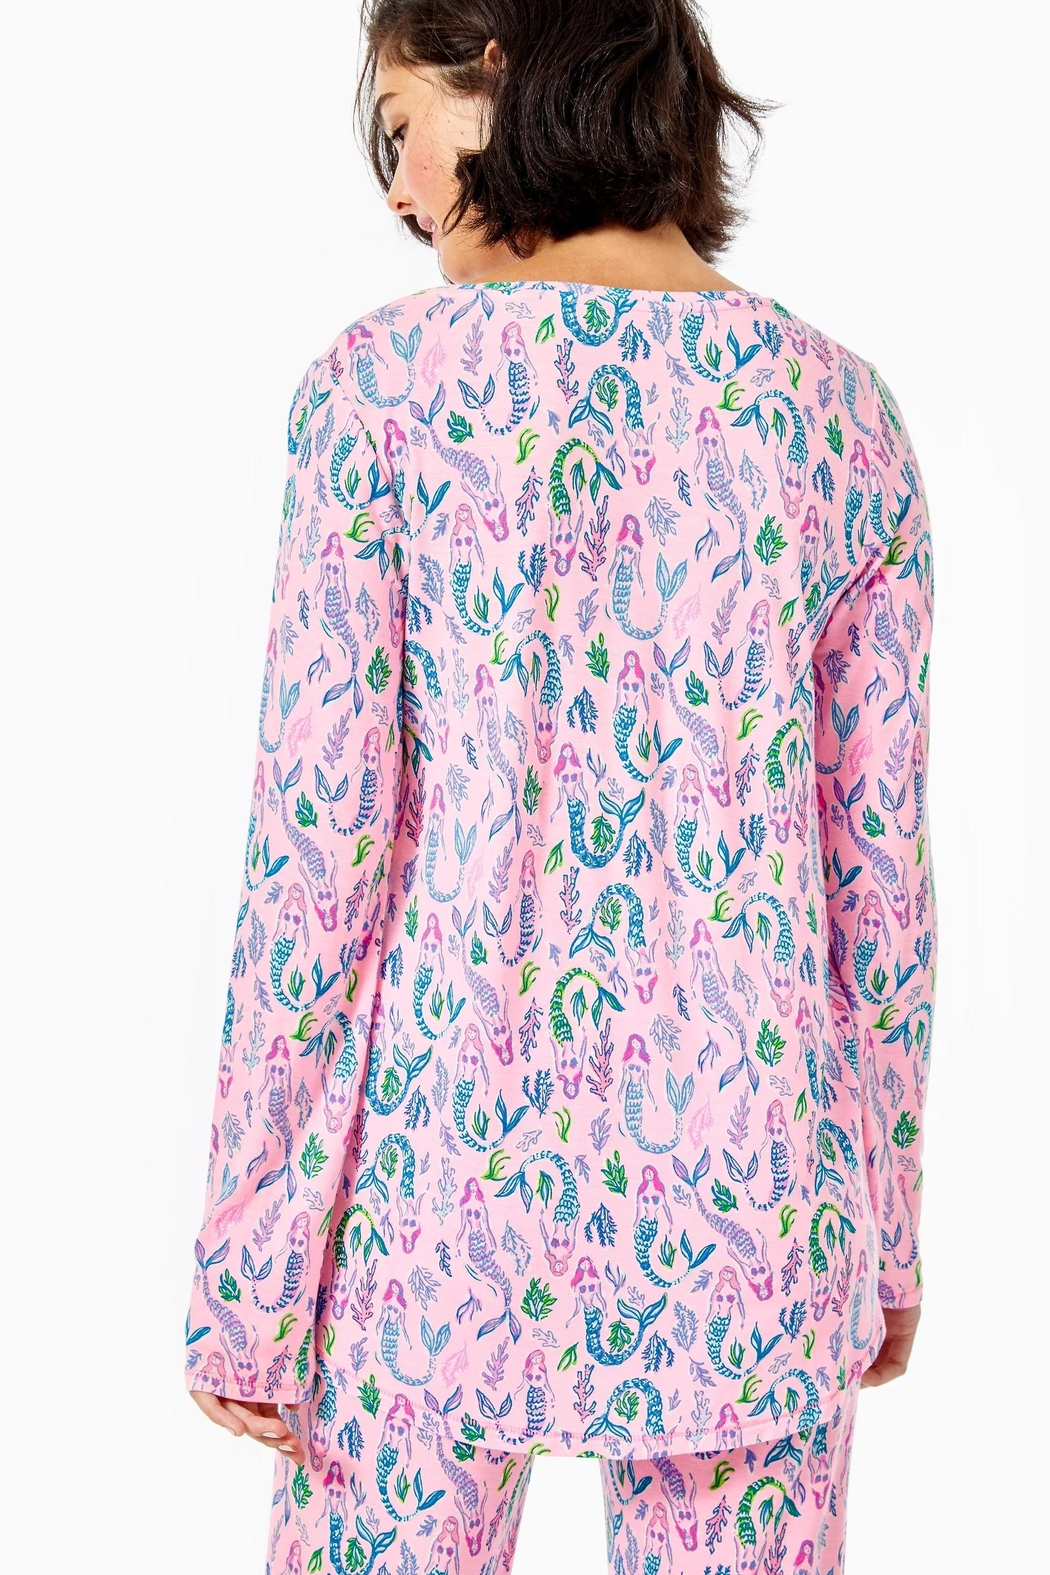 Lilly Pulitzer Pj Knit-Long-Sleeve Top - Front Full Image